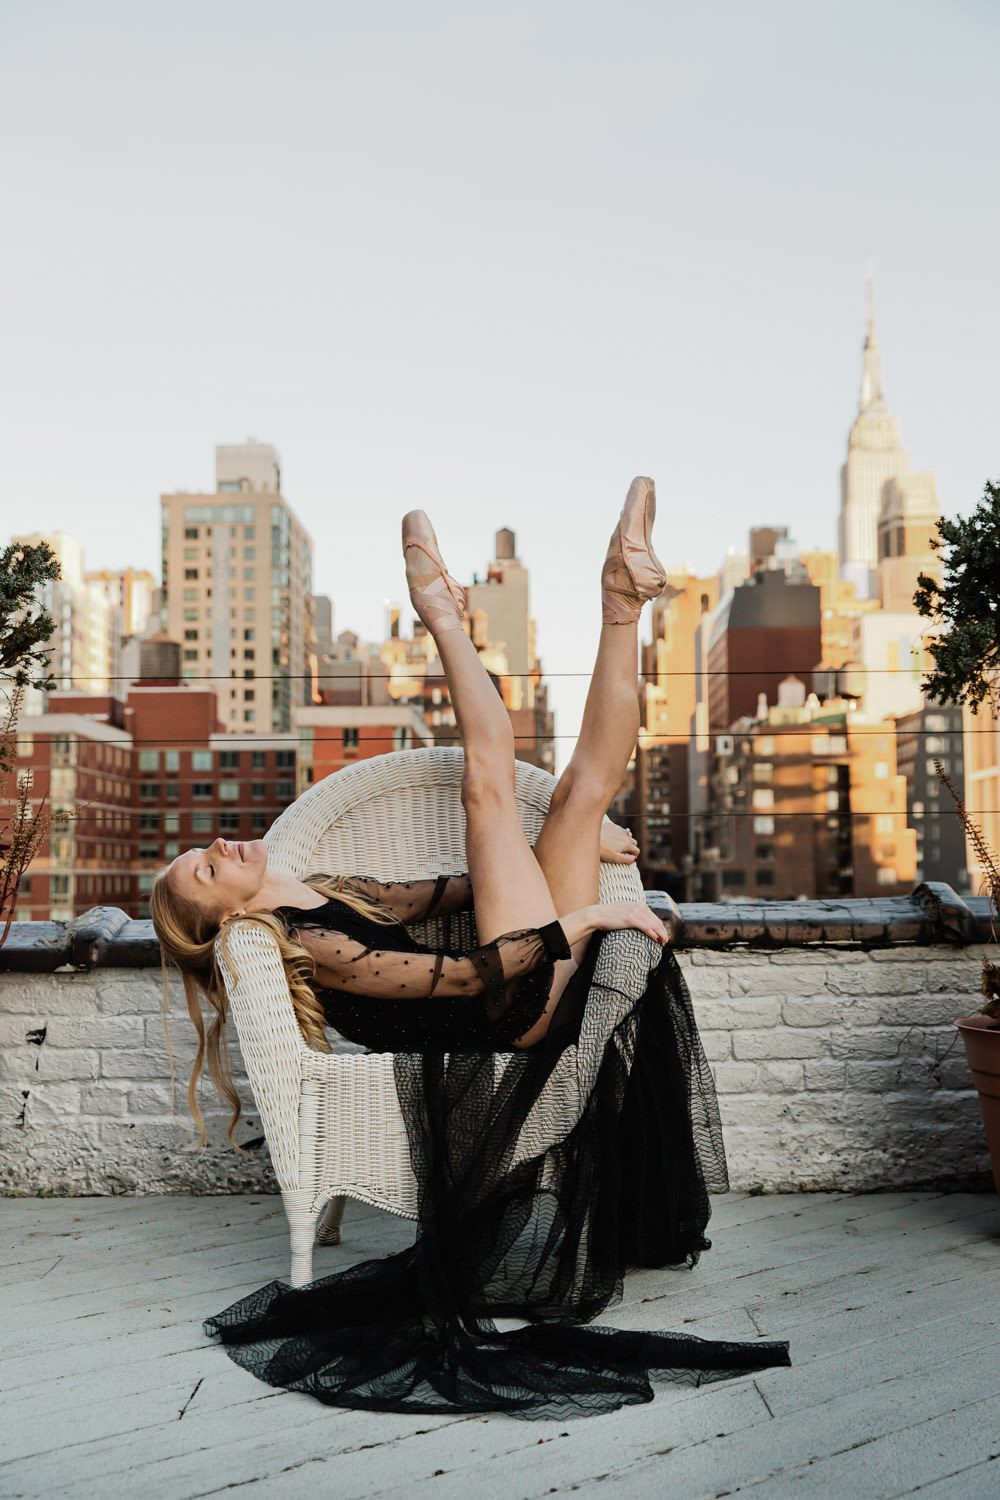 New-York-City-Ballet_Quince-and-Mulberry-Studios_NYC-Dance-SarahVillalobos-2